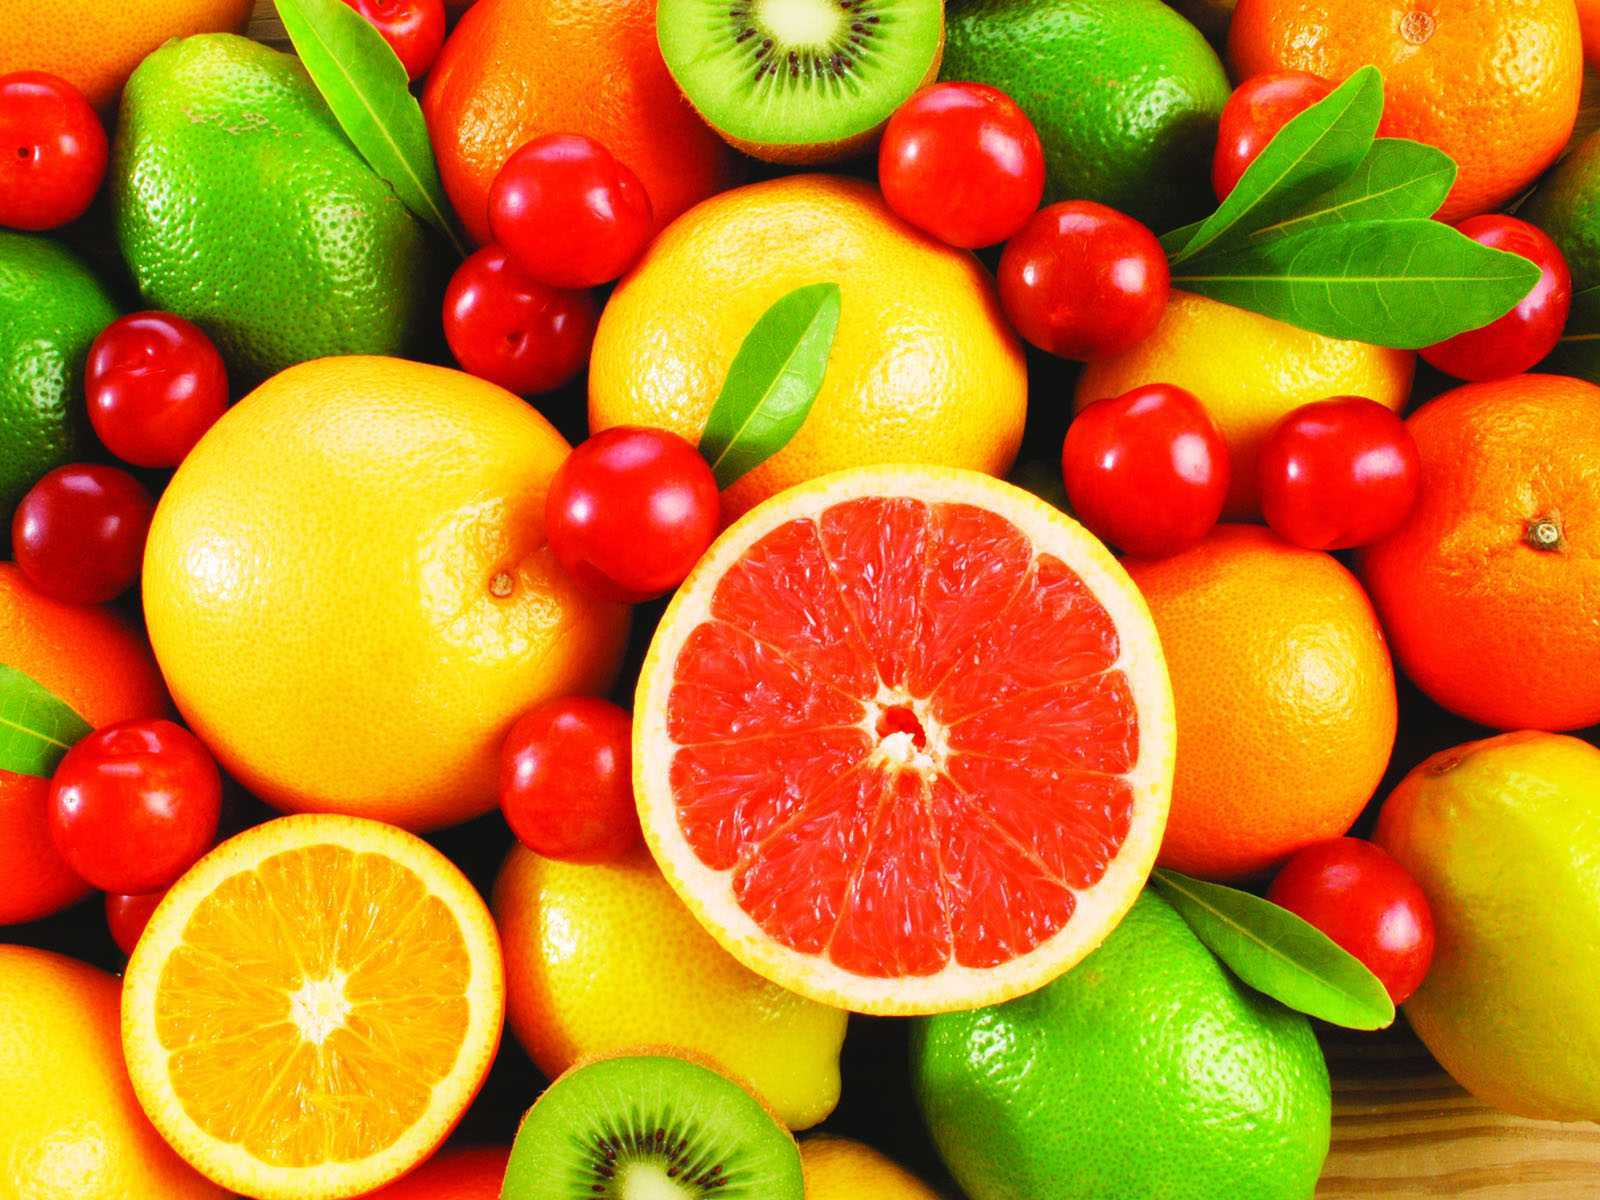 Fruits Wallpapers High Resolution